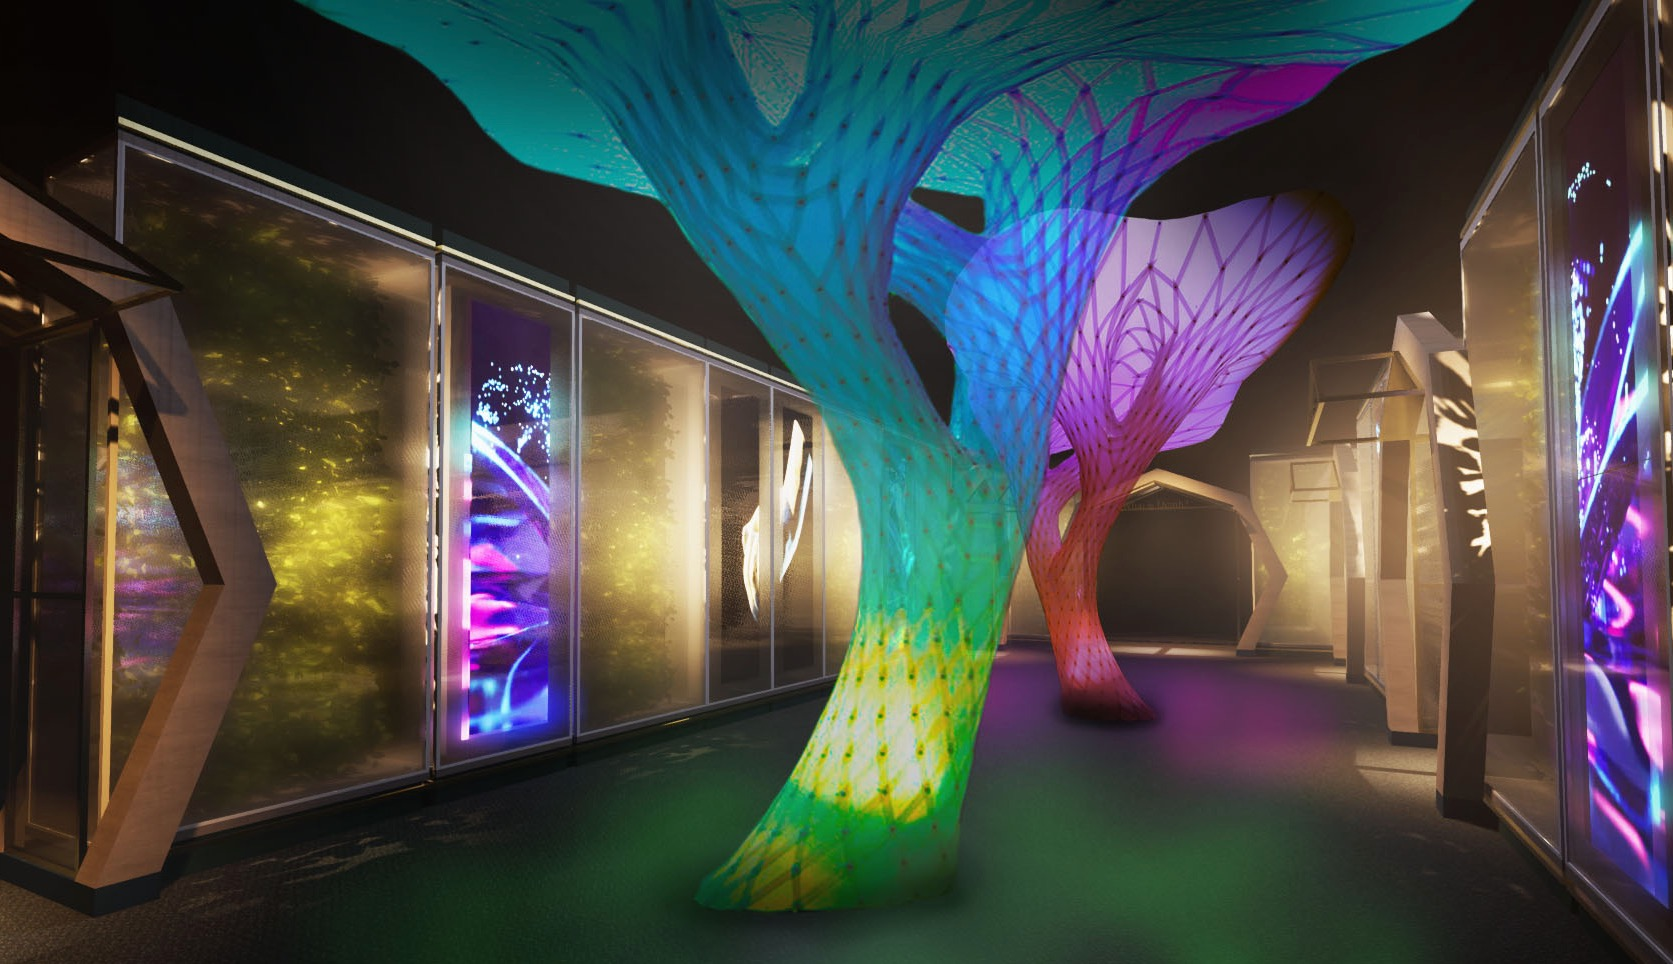 Two multicolored illuminated forms in the shape of trees.